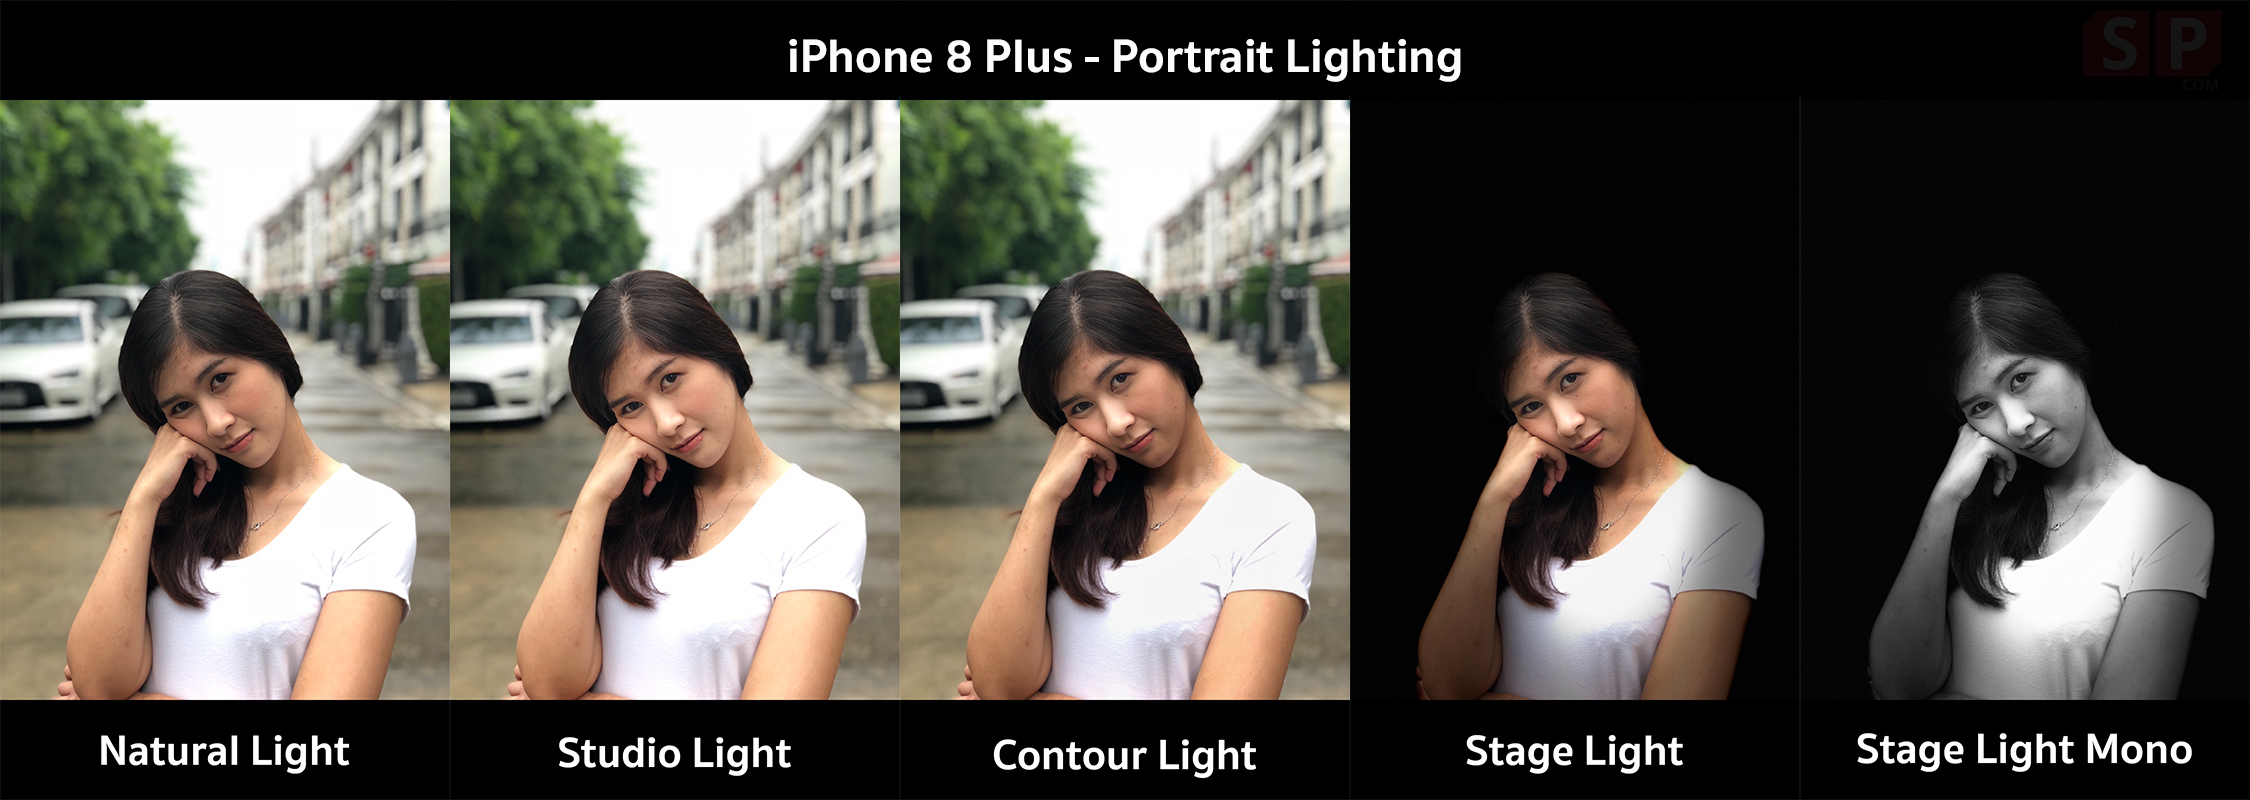 Portrait-Lighting-iPhone-8-Plus-SpecPhone